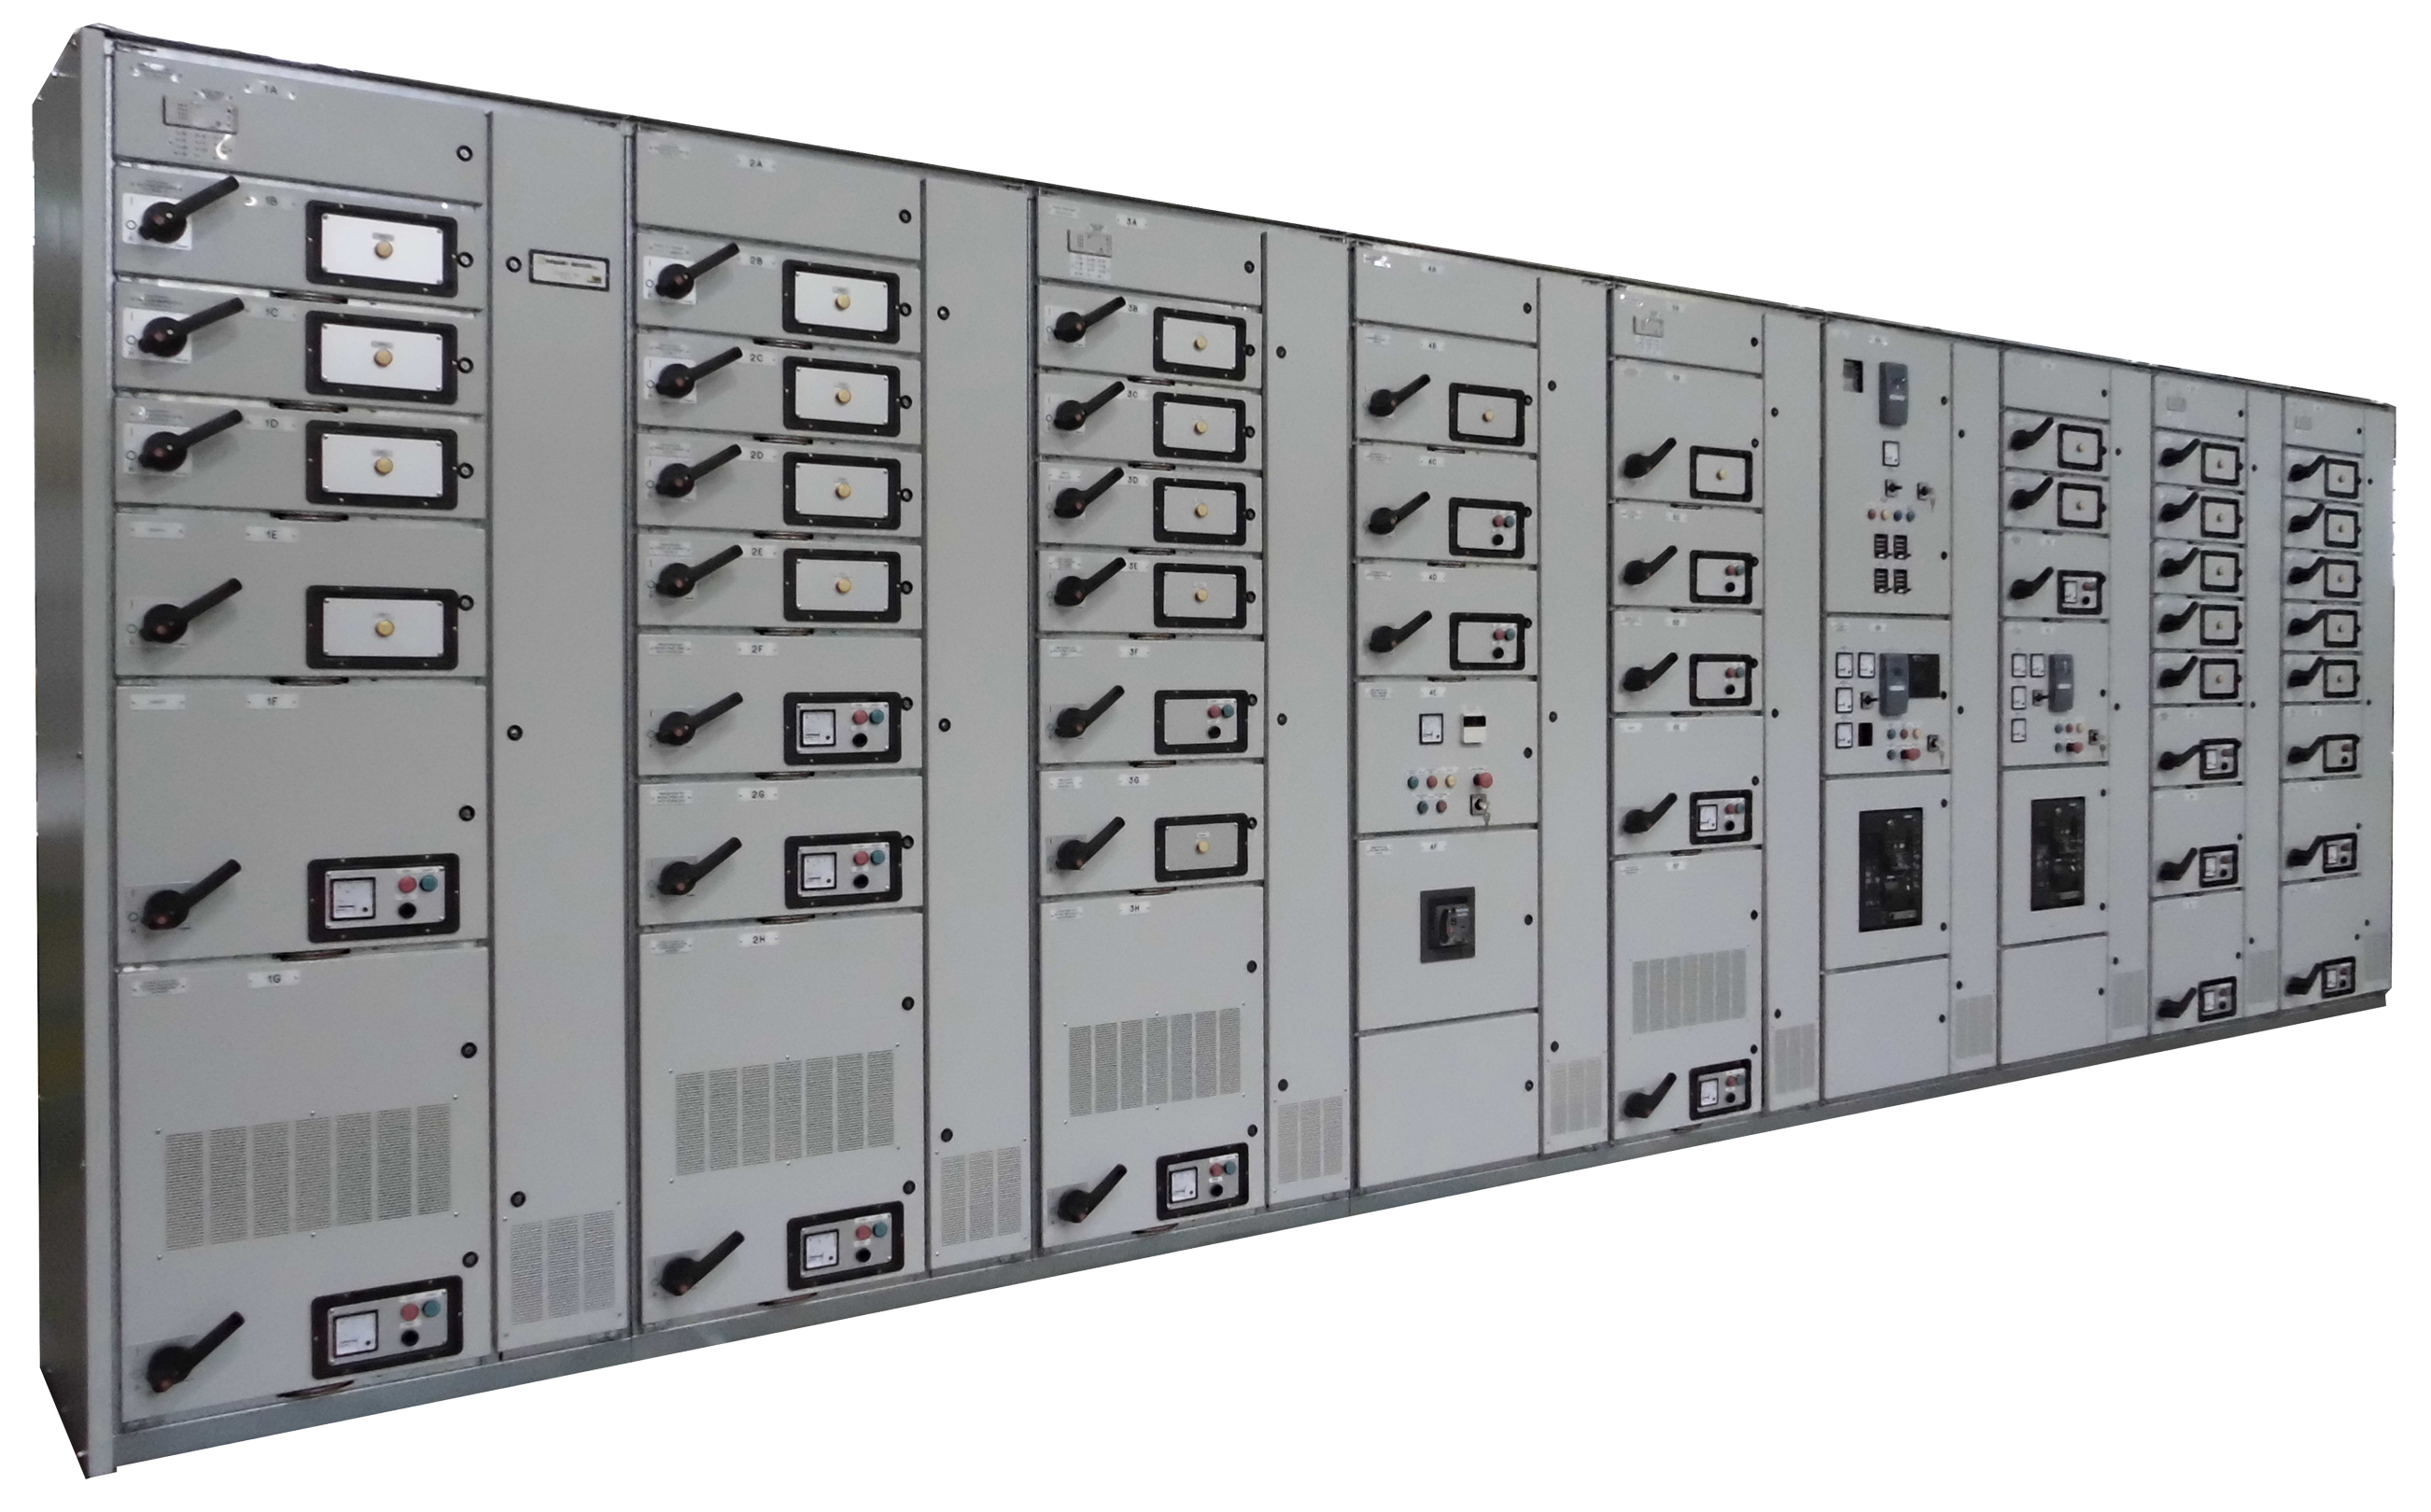 Lv switchboards imequadri duestelle s p a for Low voltage motor control center